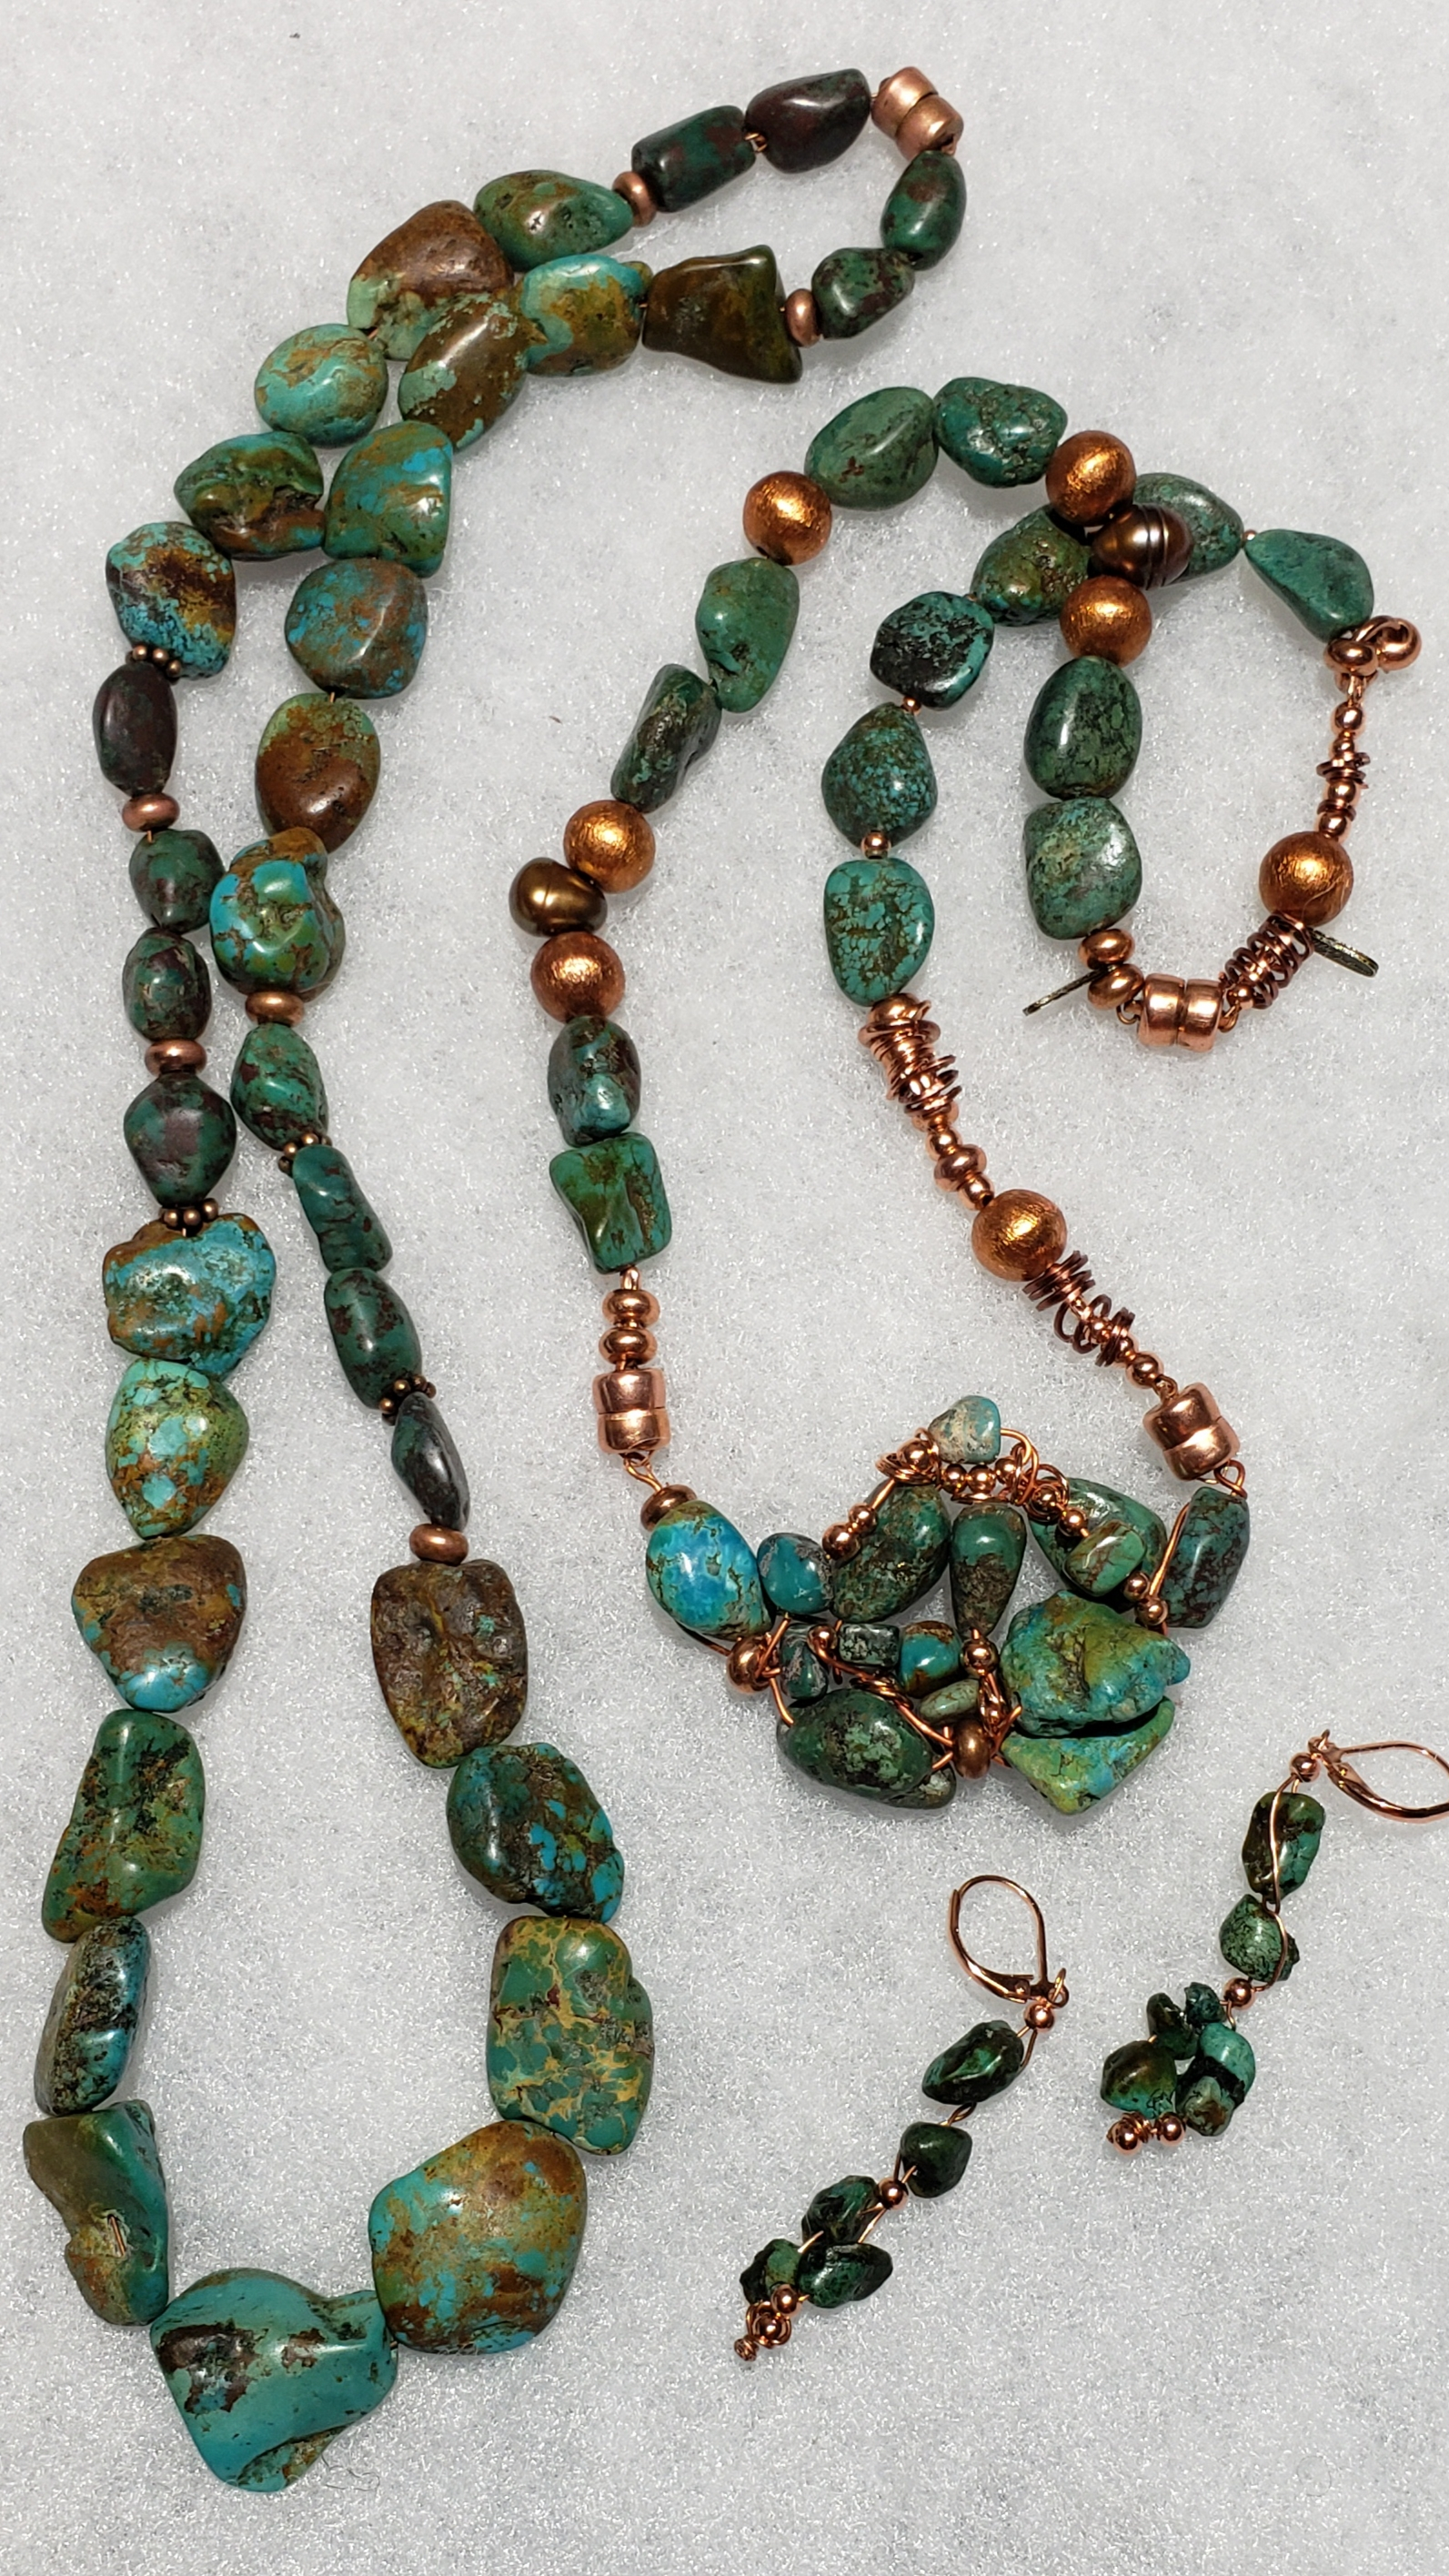 Turquoise Set, by Mark Kempster